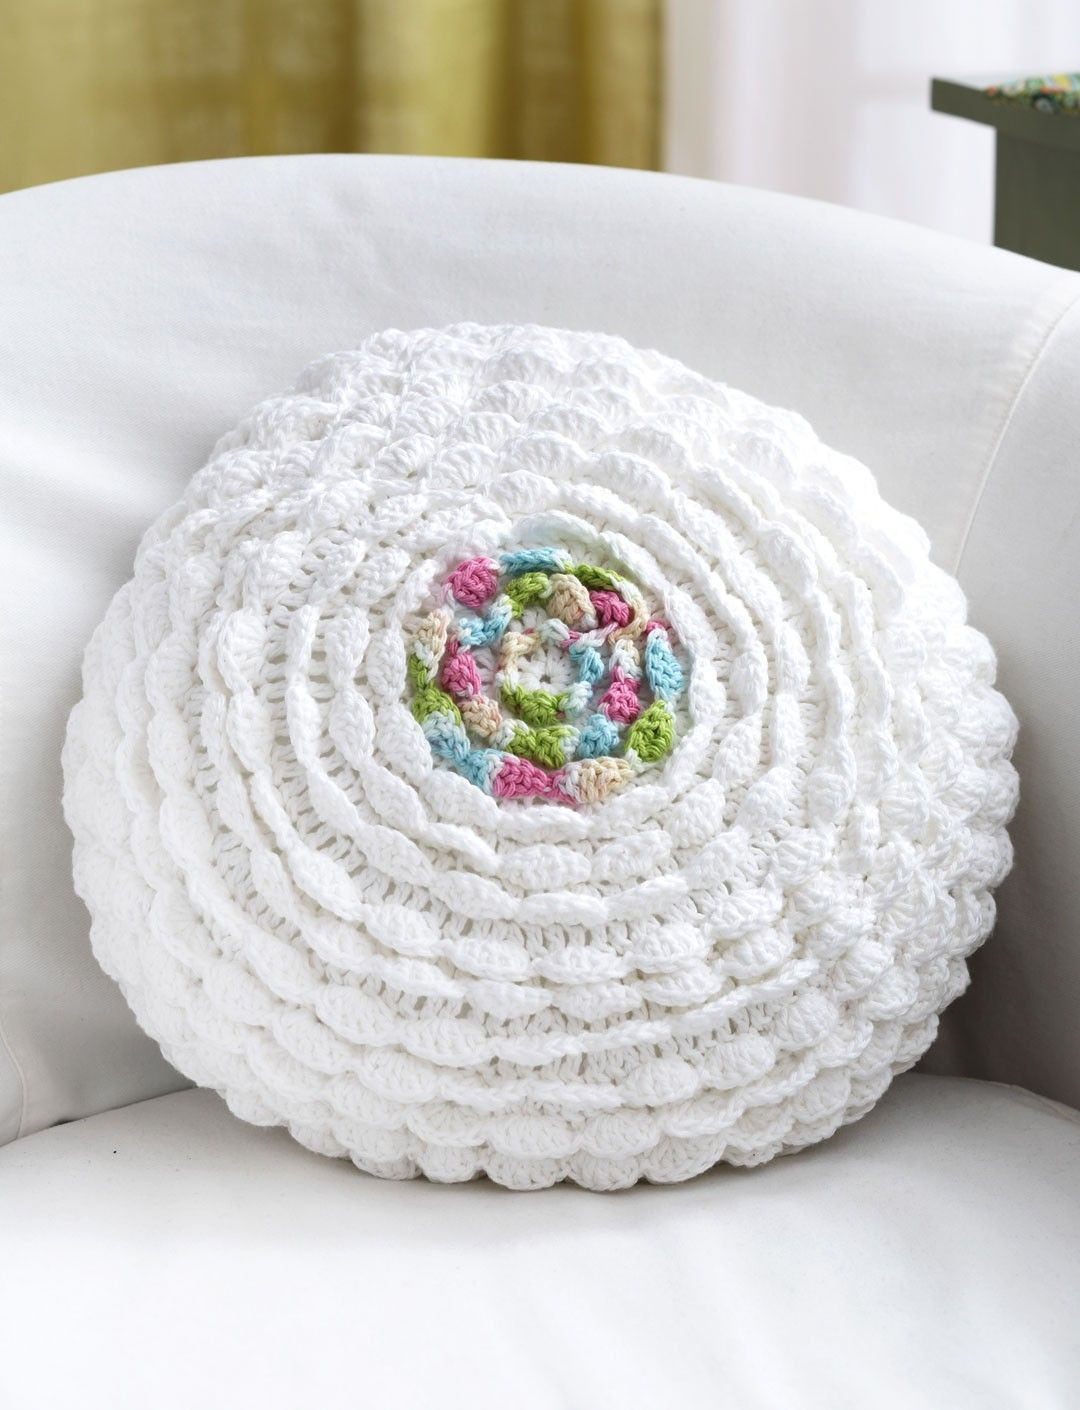 Ruffled crochet pillow adds a delicate touch: free crochet pattern ...